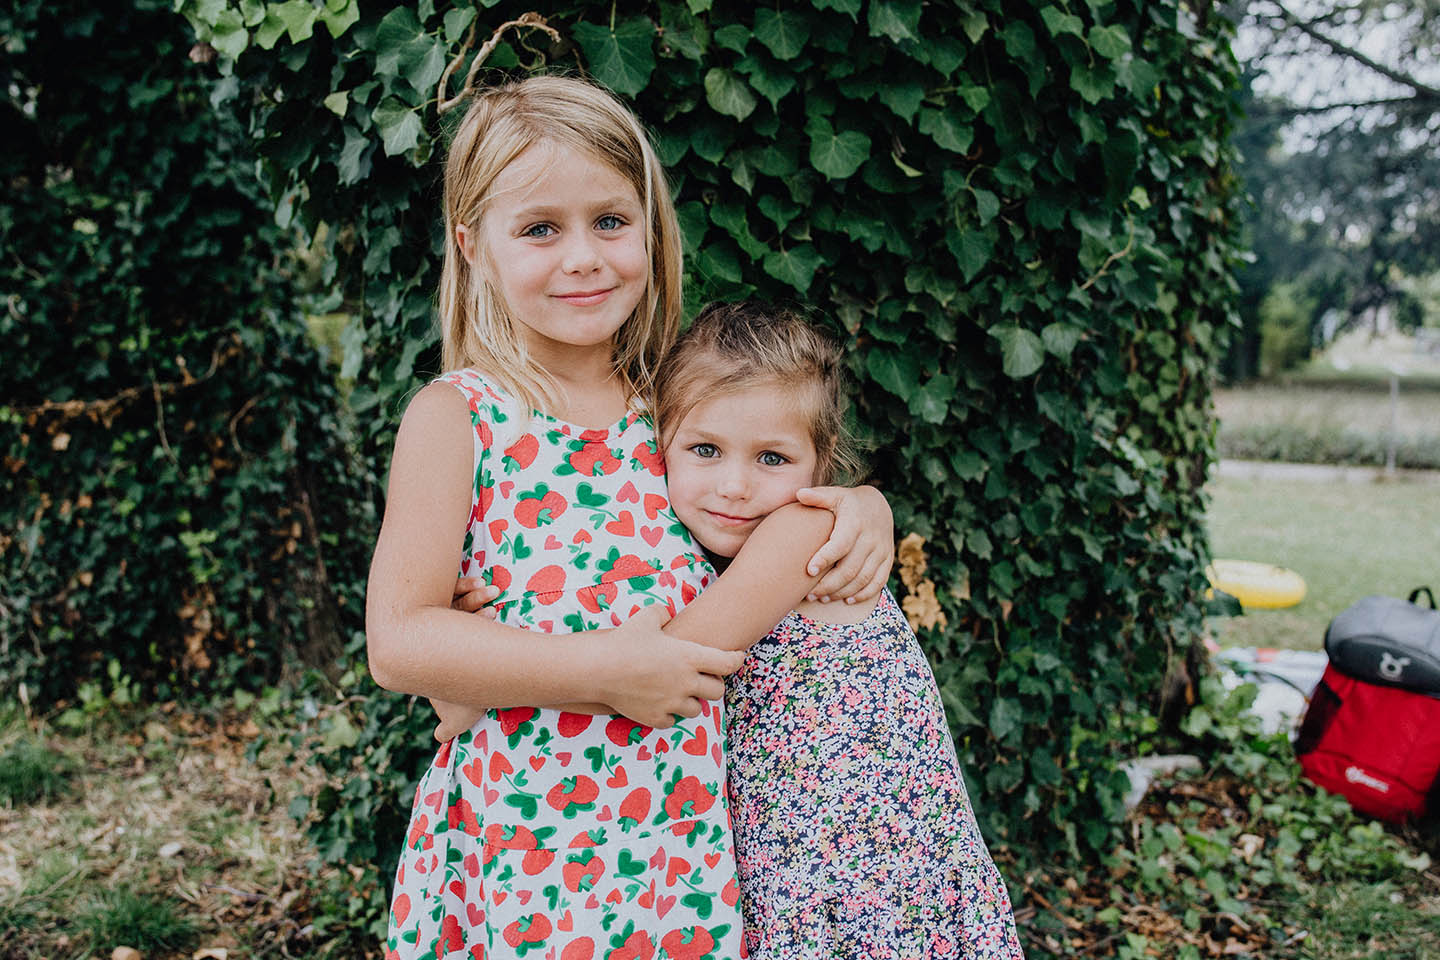 Sisters, children photography, family photography, Alice Payne photography